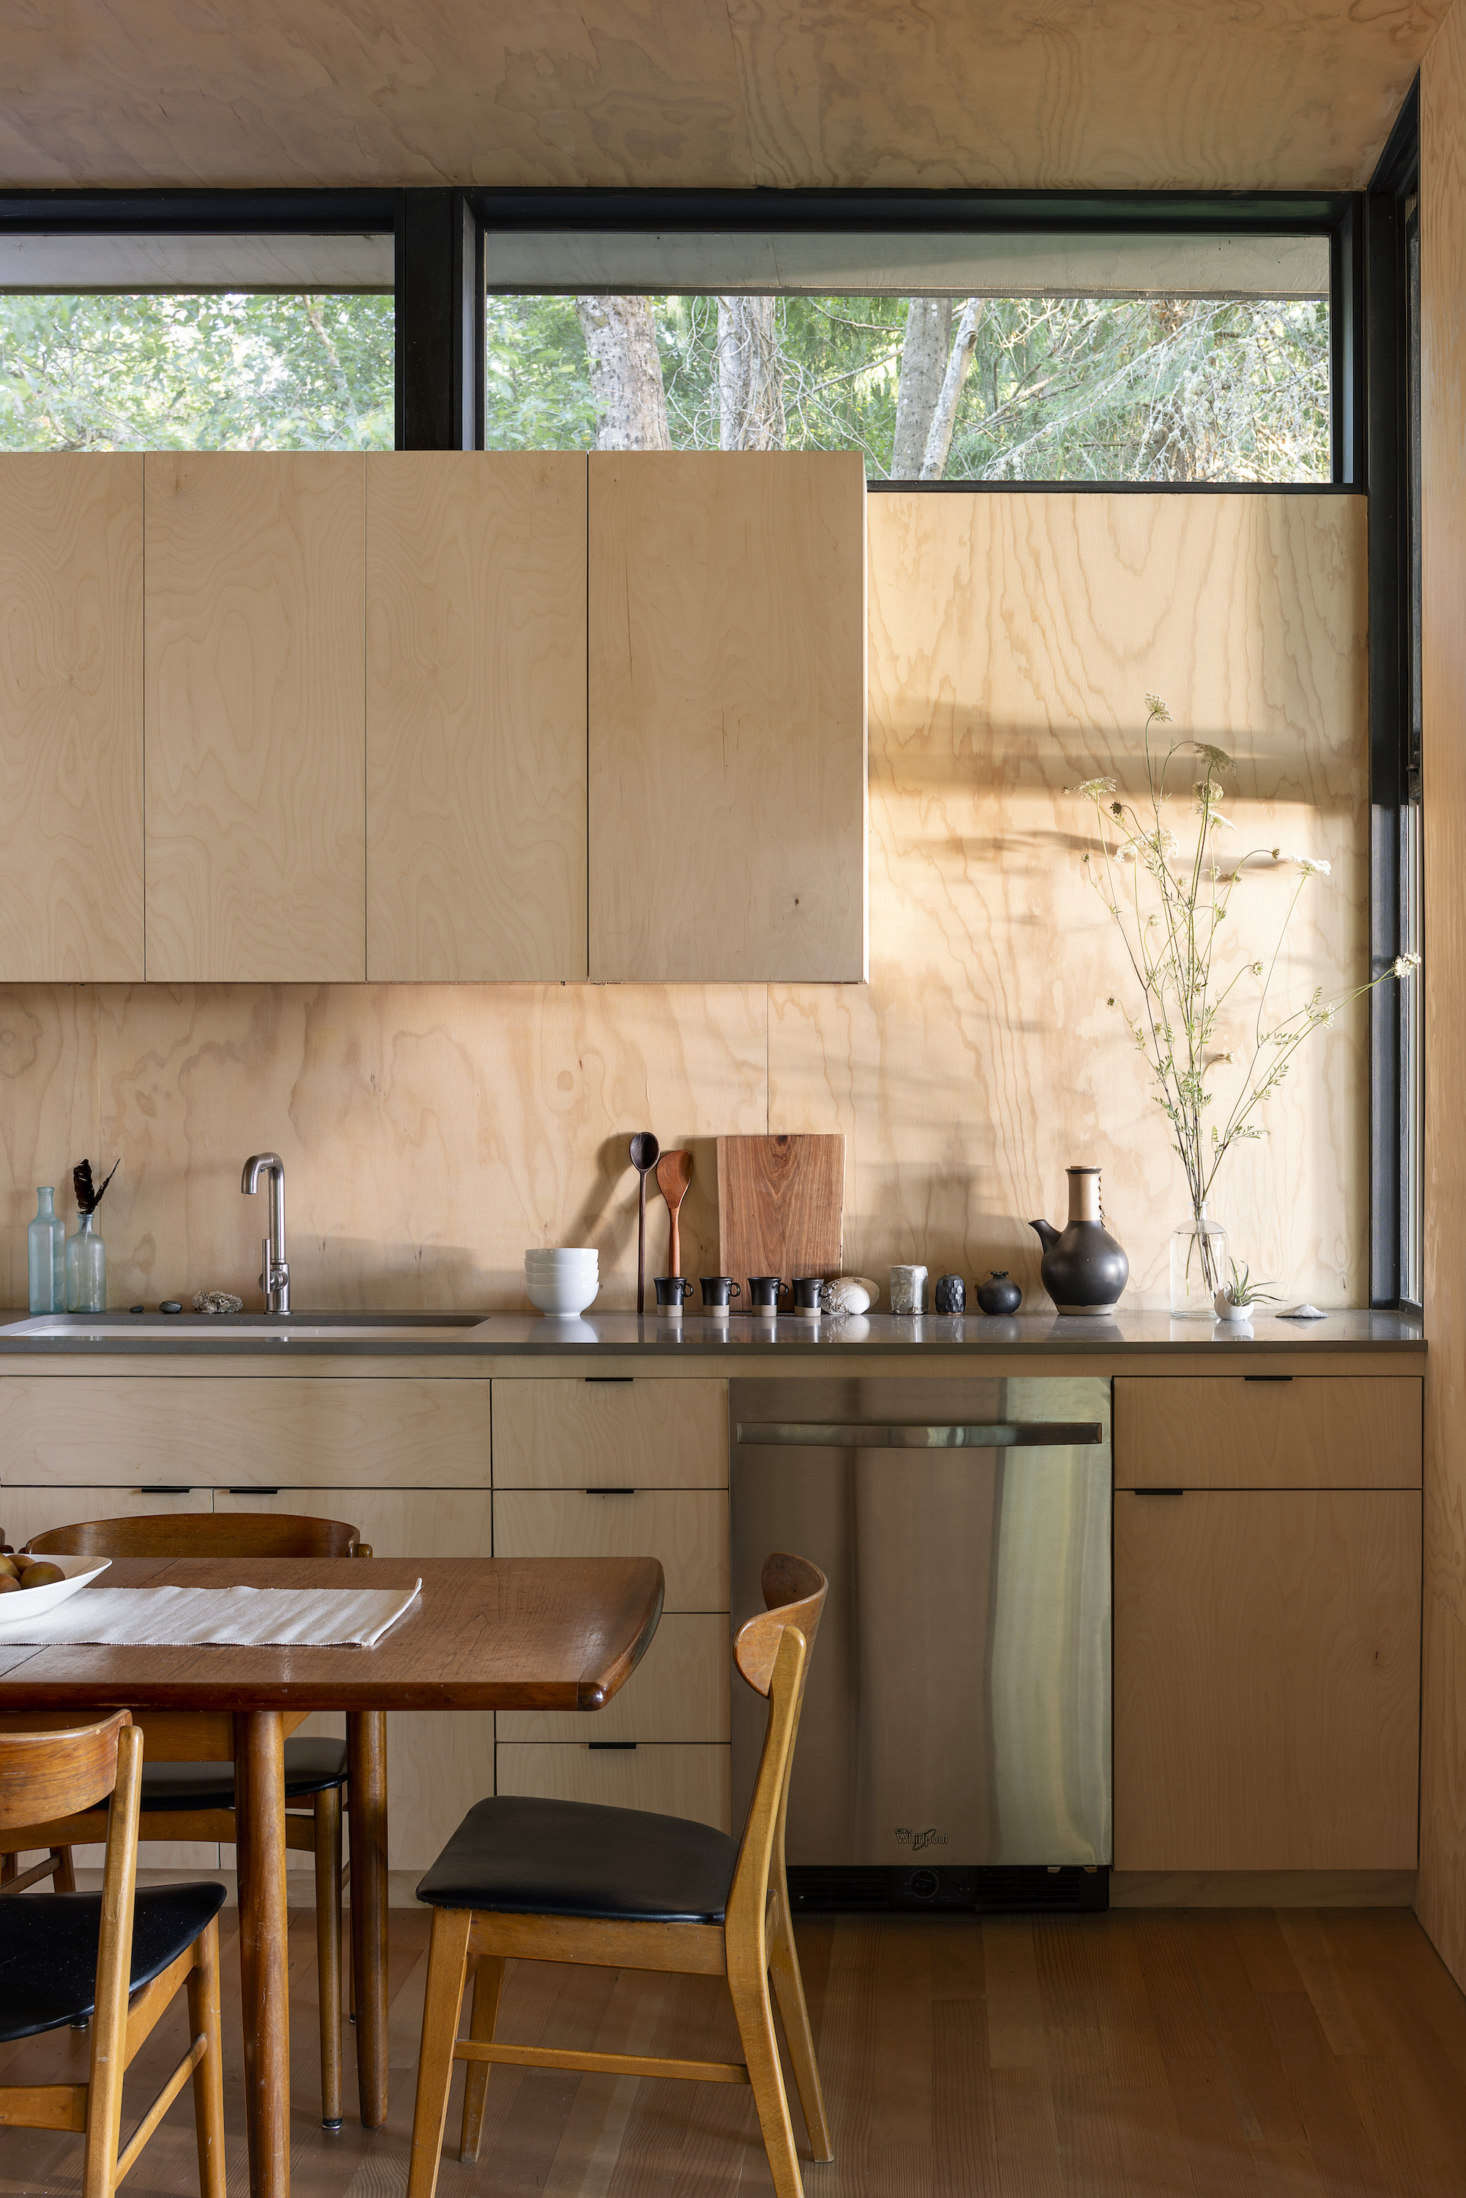 The custom kitchen cabinets are made from birch plywood.